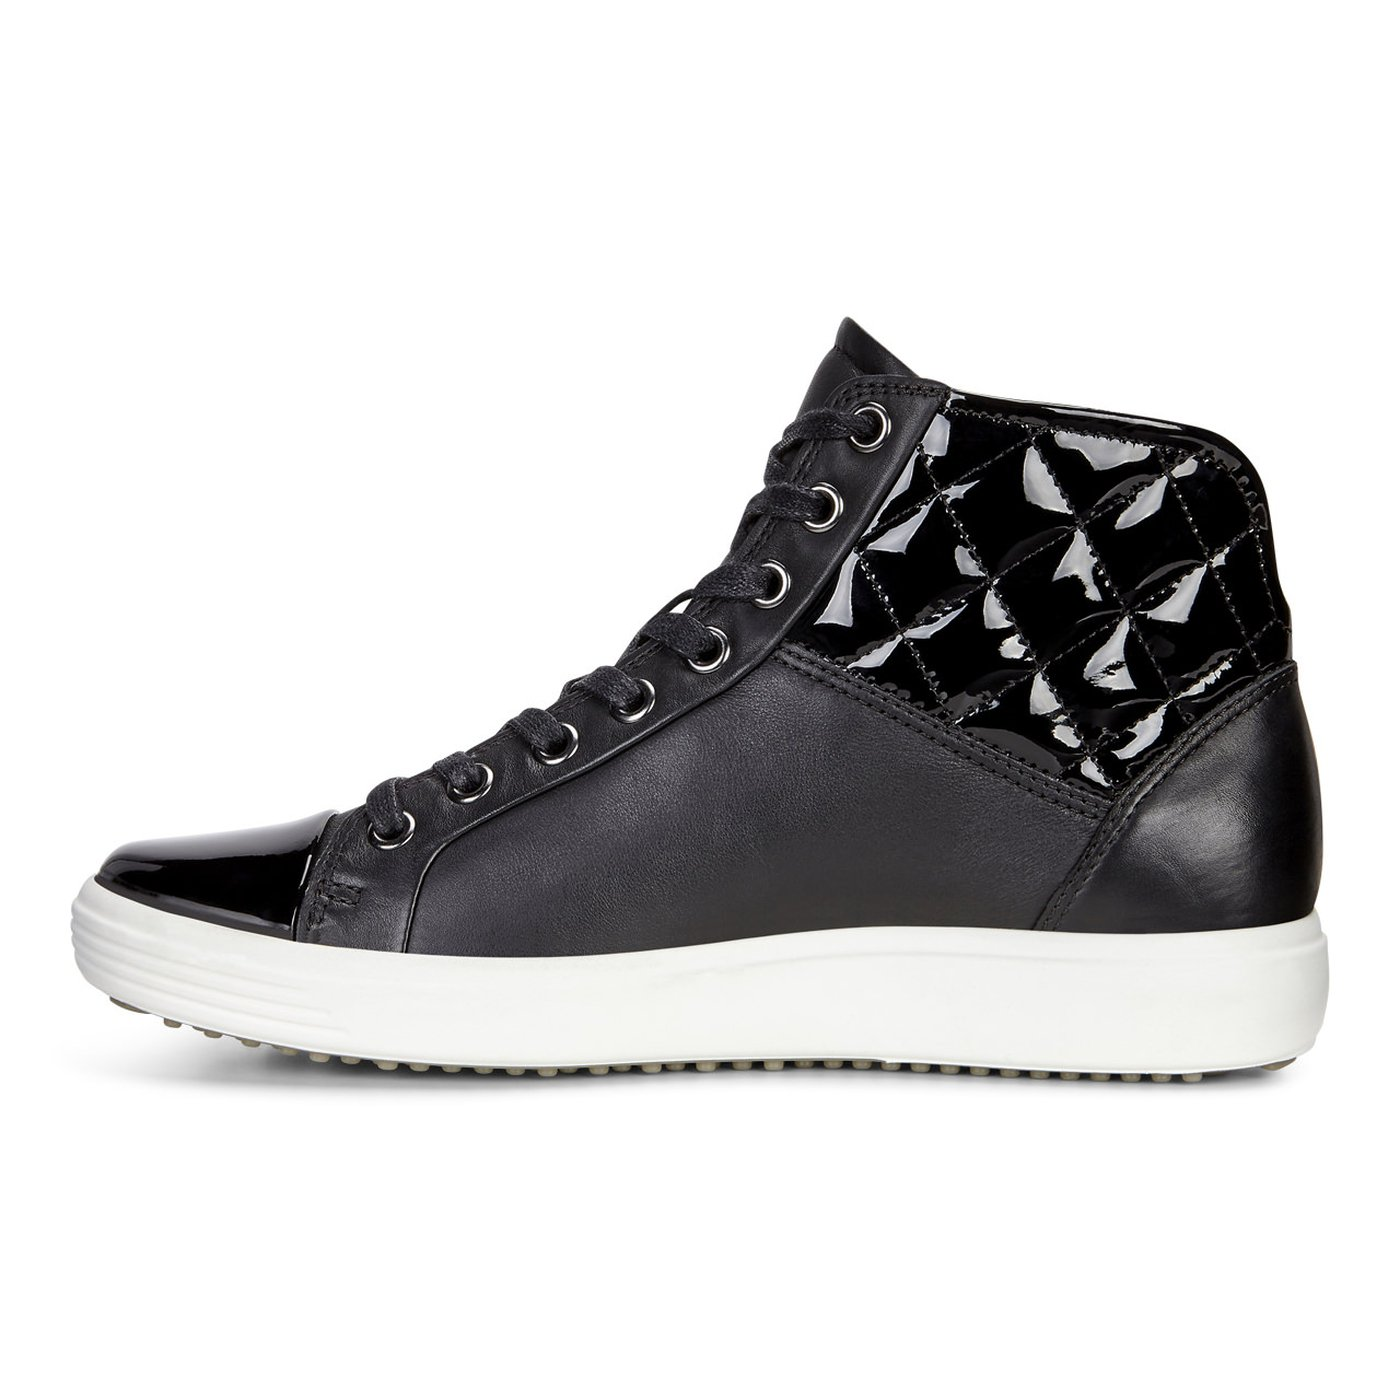 ECCO SOFT7 Ladies Quilted High Top